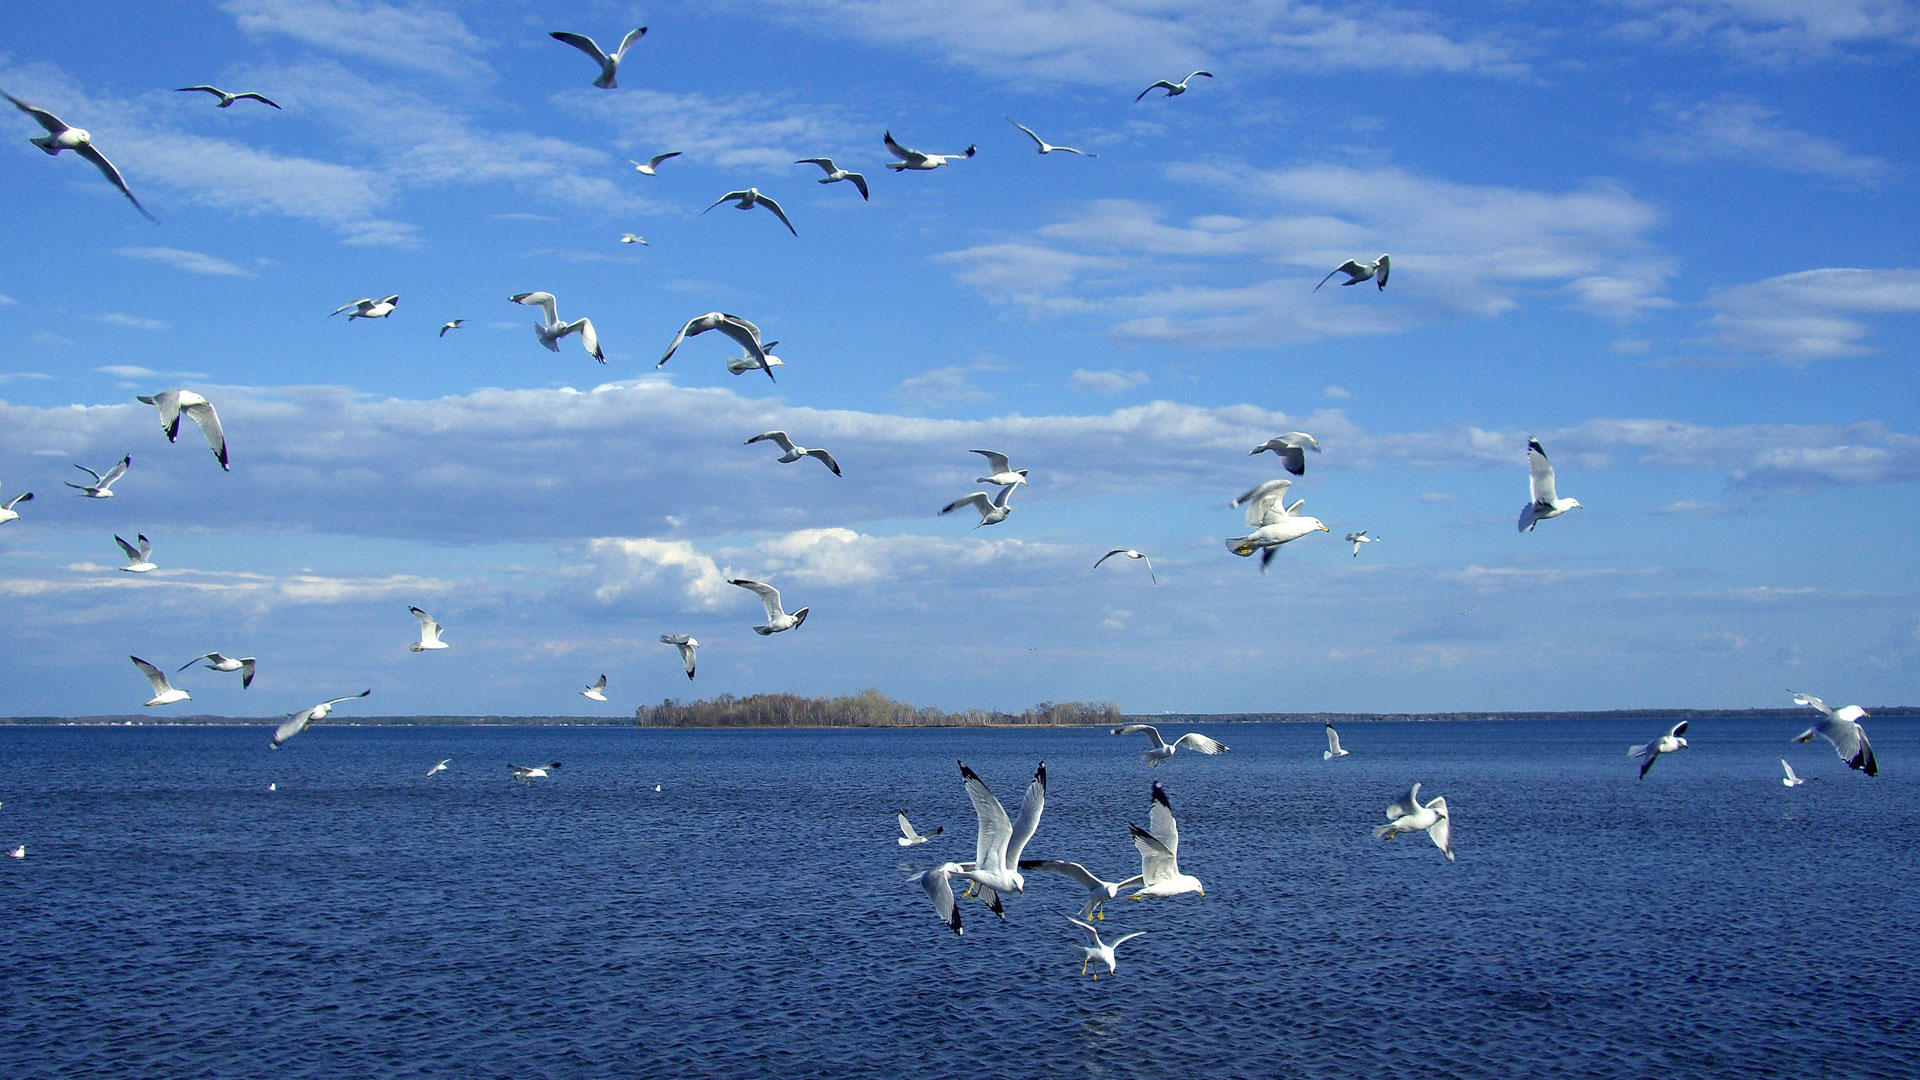 Birds on Sea Wallpapers HD Wallpapers 1920x1080